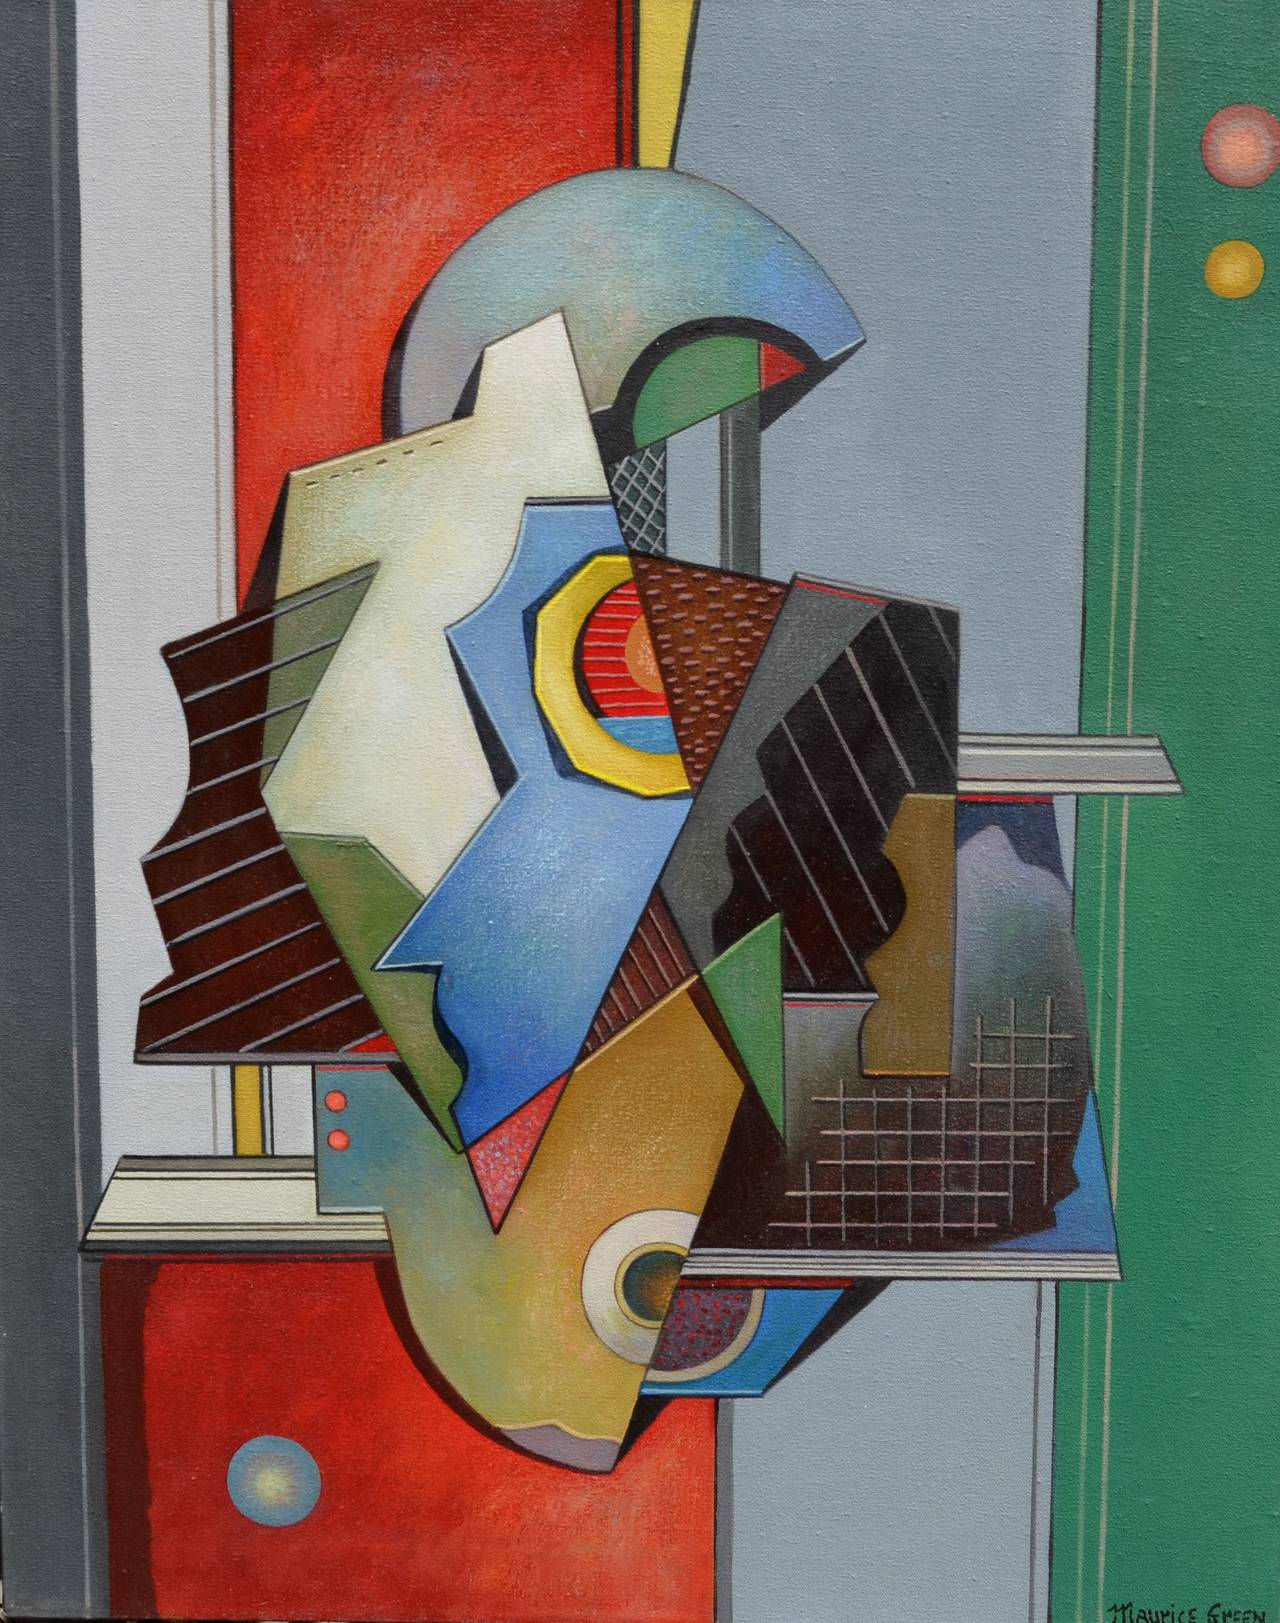 Maurice Green Abstract Painting - Cubist Abstract in Green